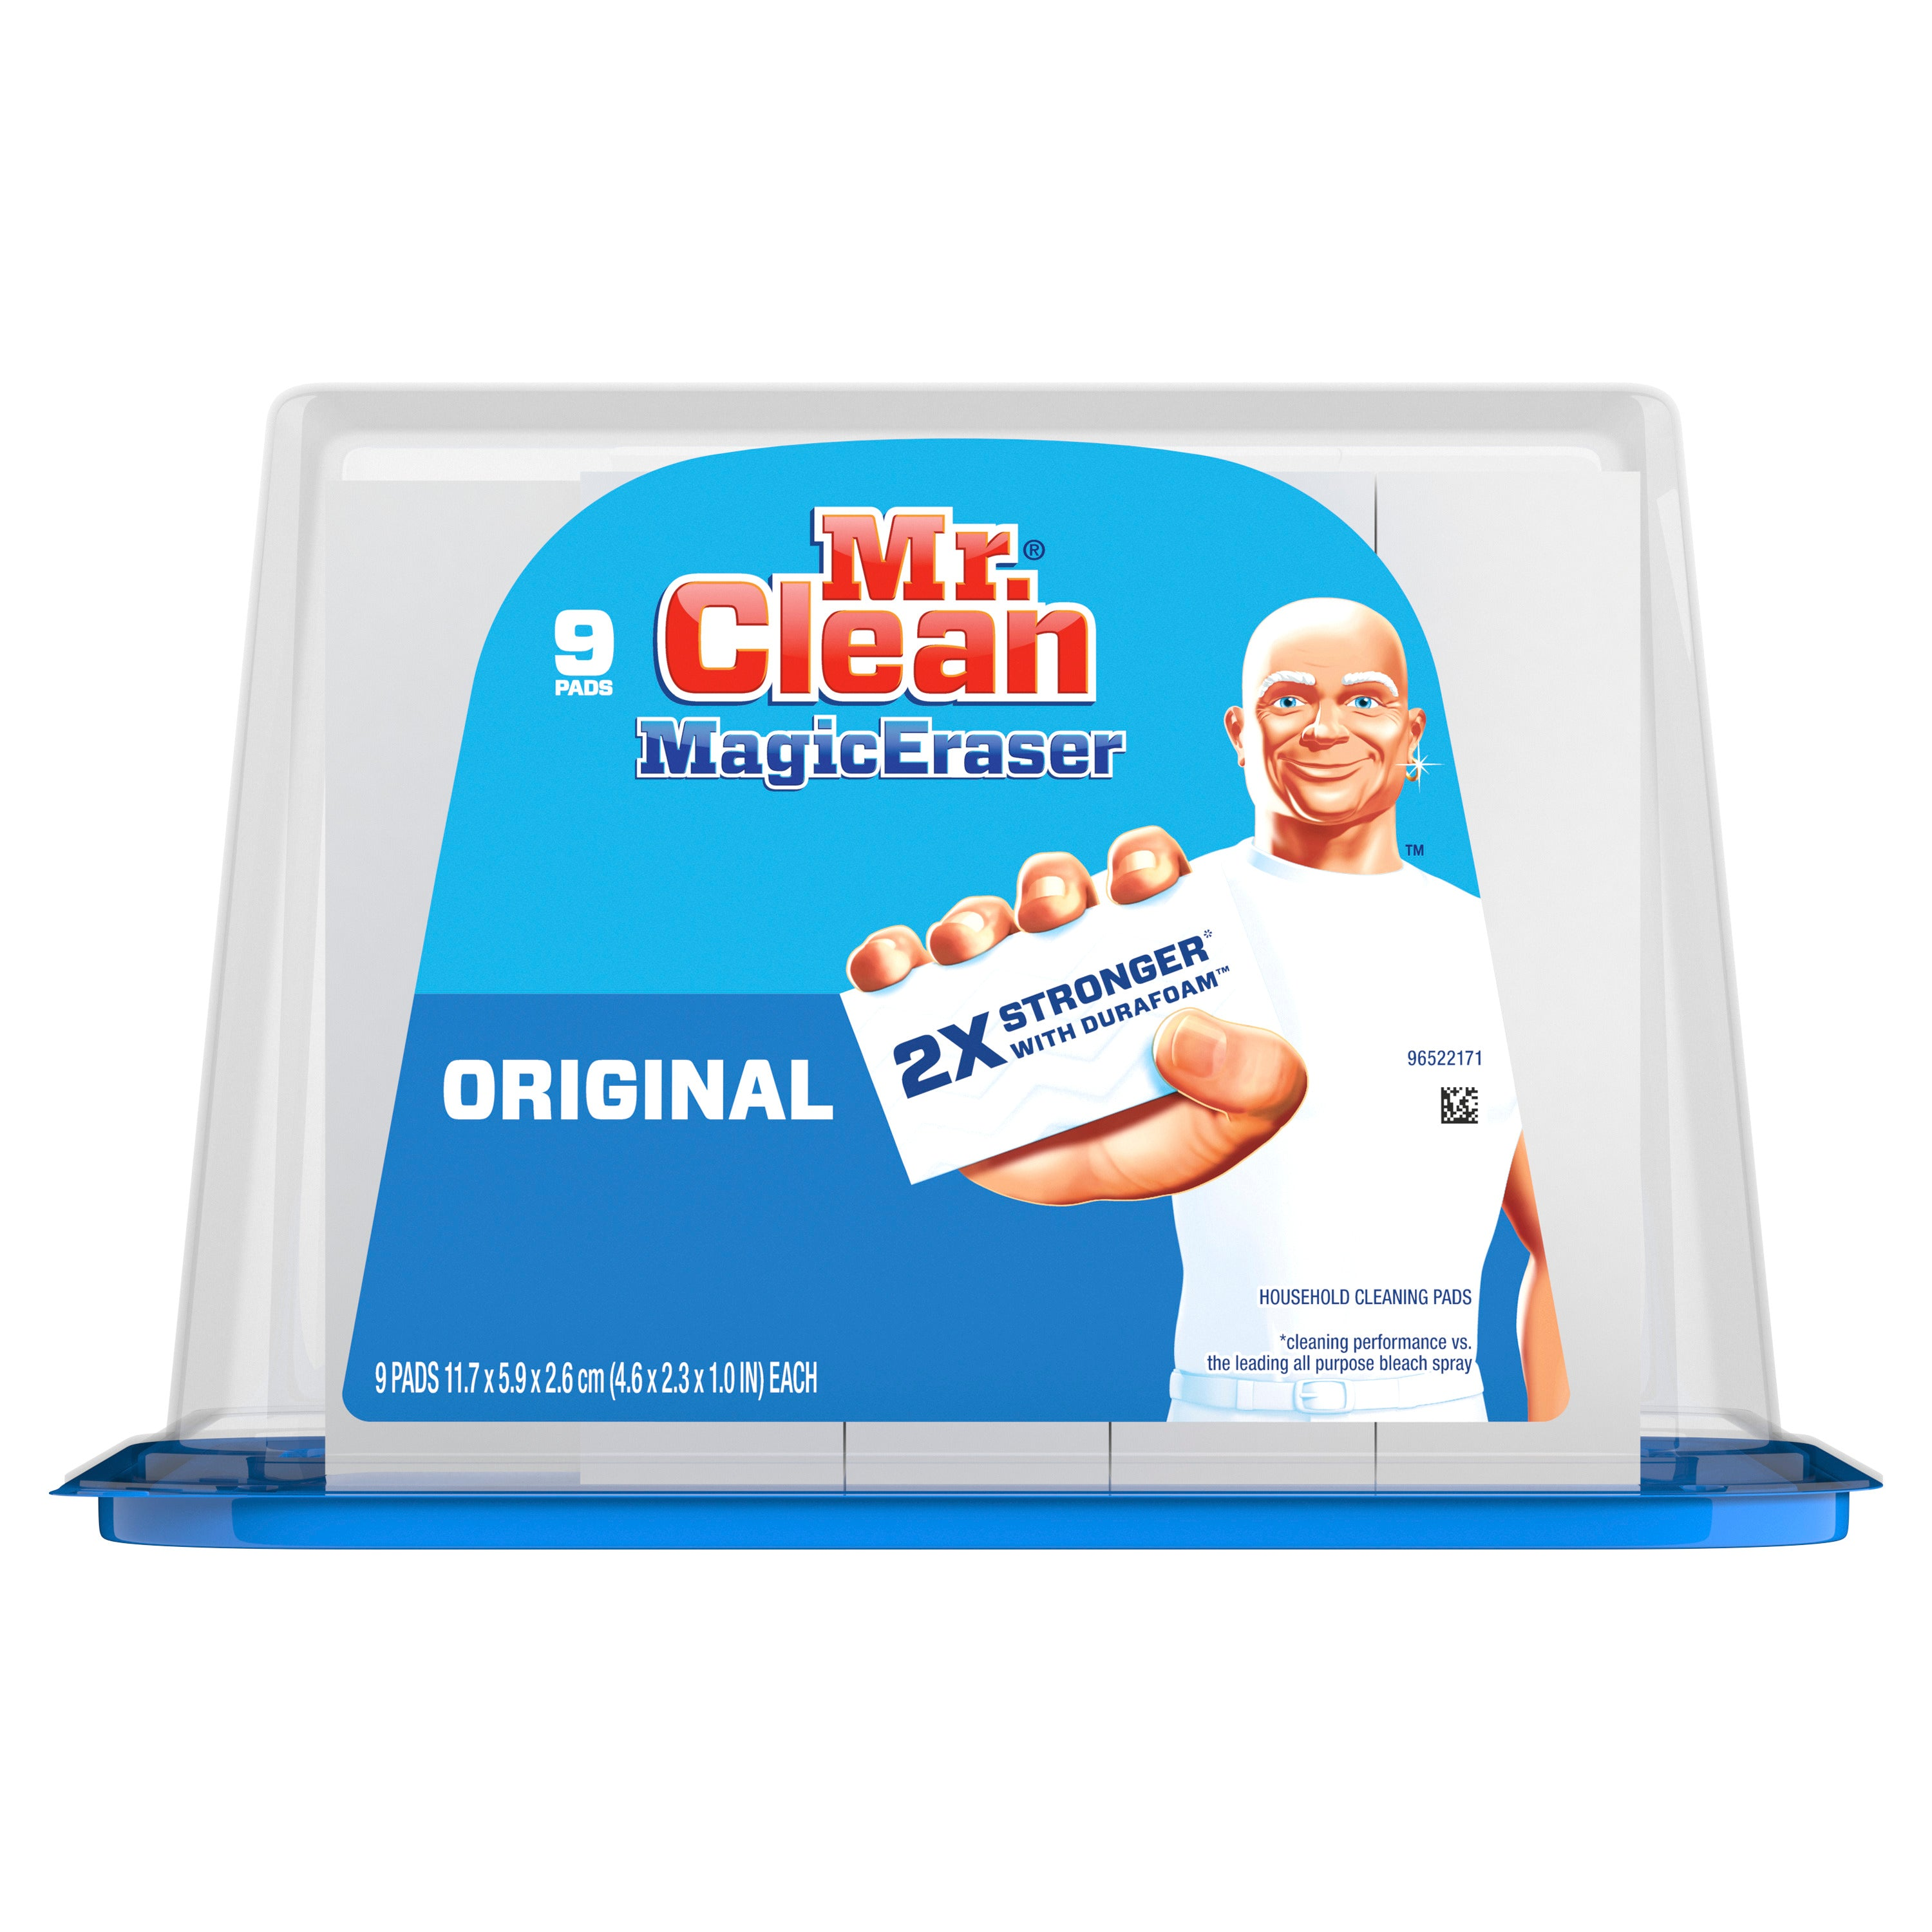 Mr. Clean Magic Eraser Original Cleaning Pads with Durafoam, 9 Ct - FLJ CORPORATIONS